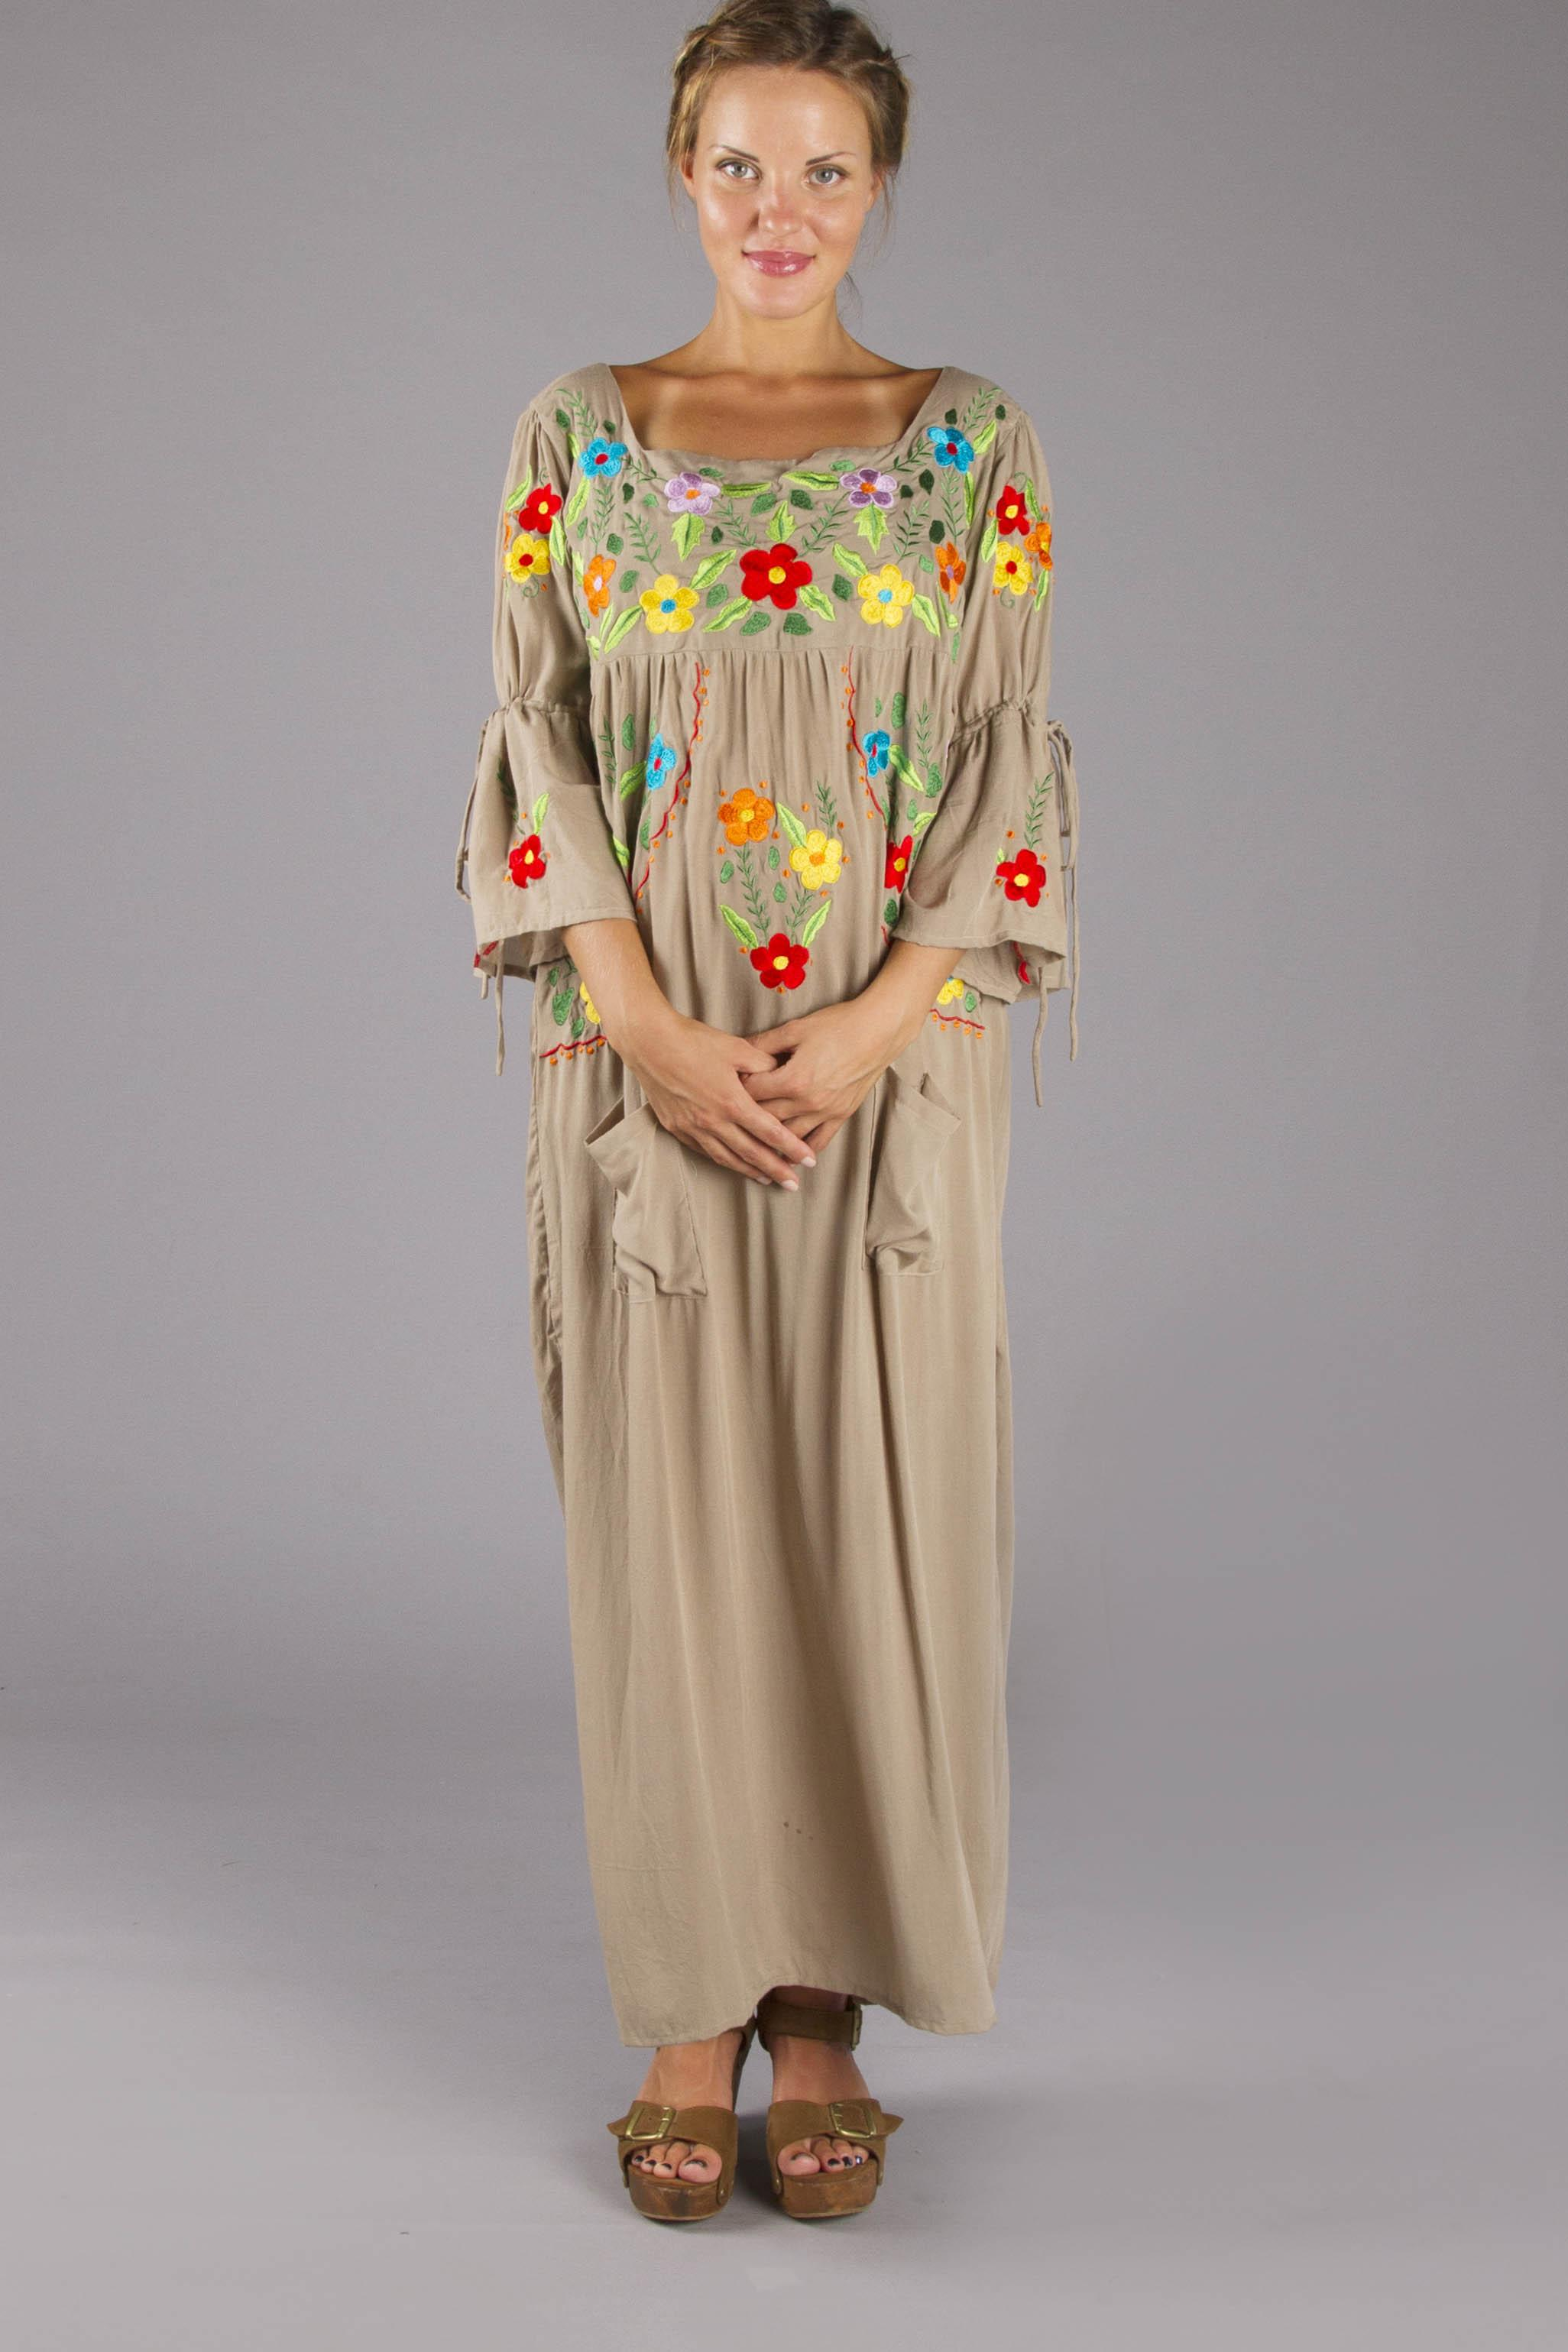 Quot Woodstock Maternity Quot Embroidered Maternity Kaftan